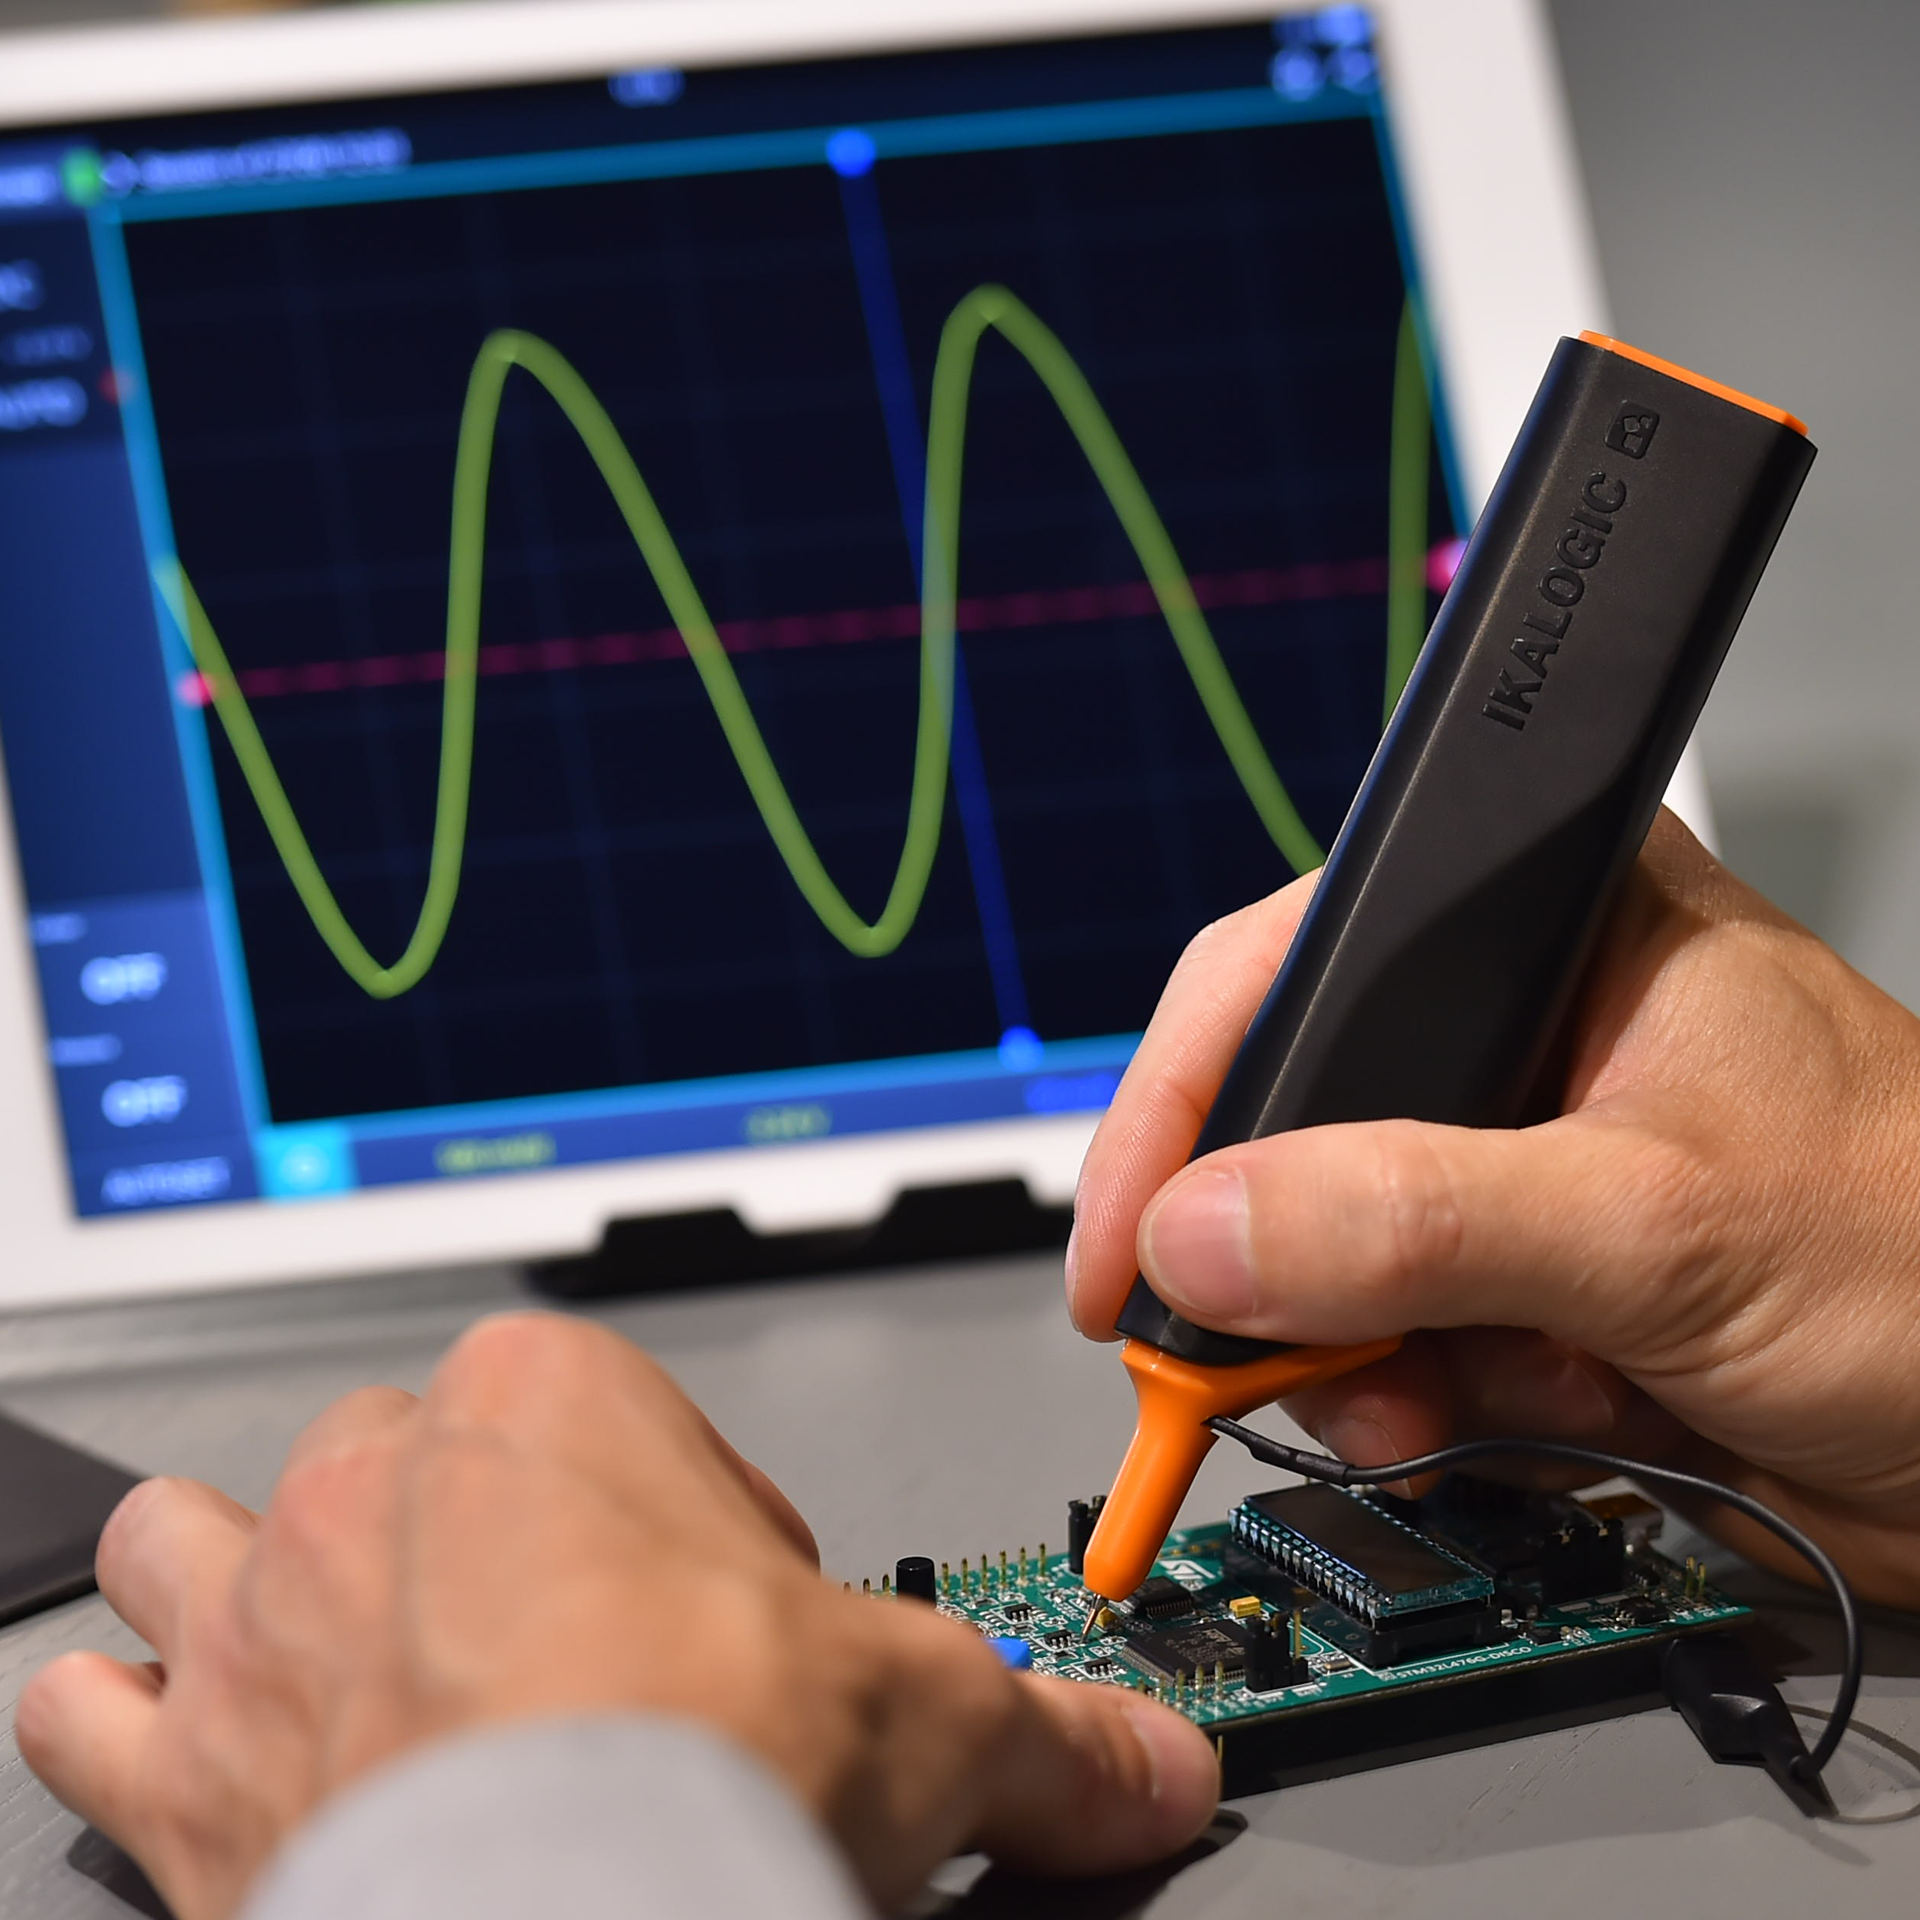 Wireless oscilloscope probe